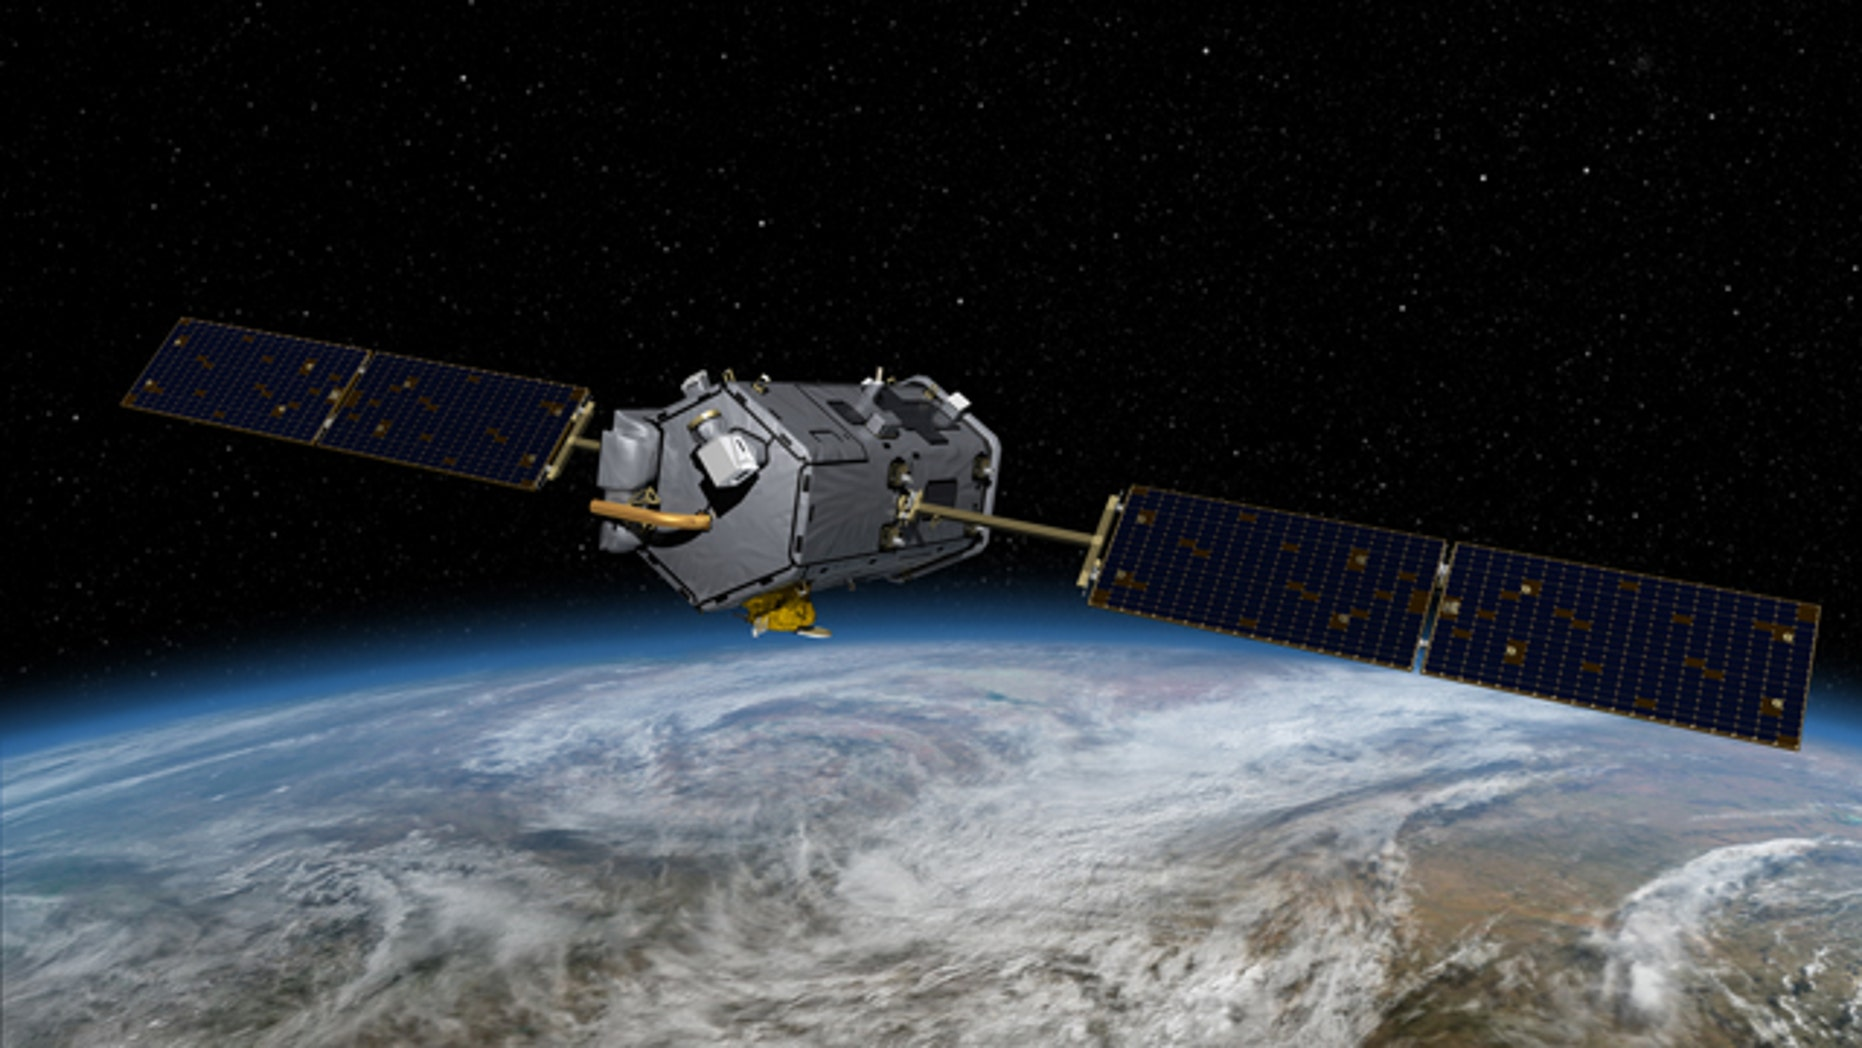 An artist's conception of the Orbiting Carbon Observatory satellite that splashed into the ocean near Antarctica in February 2009. Even if nations agree to cut greenhouse gas emissions, how will the world know if they are living up to their pledges? The answer may come from both outer space and cyberspace.